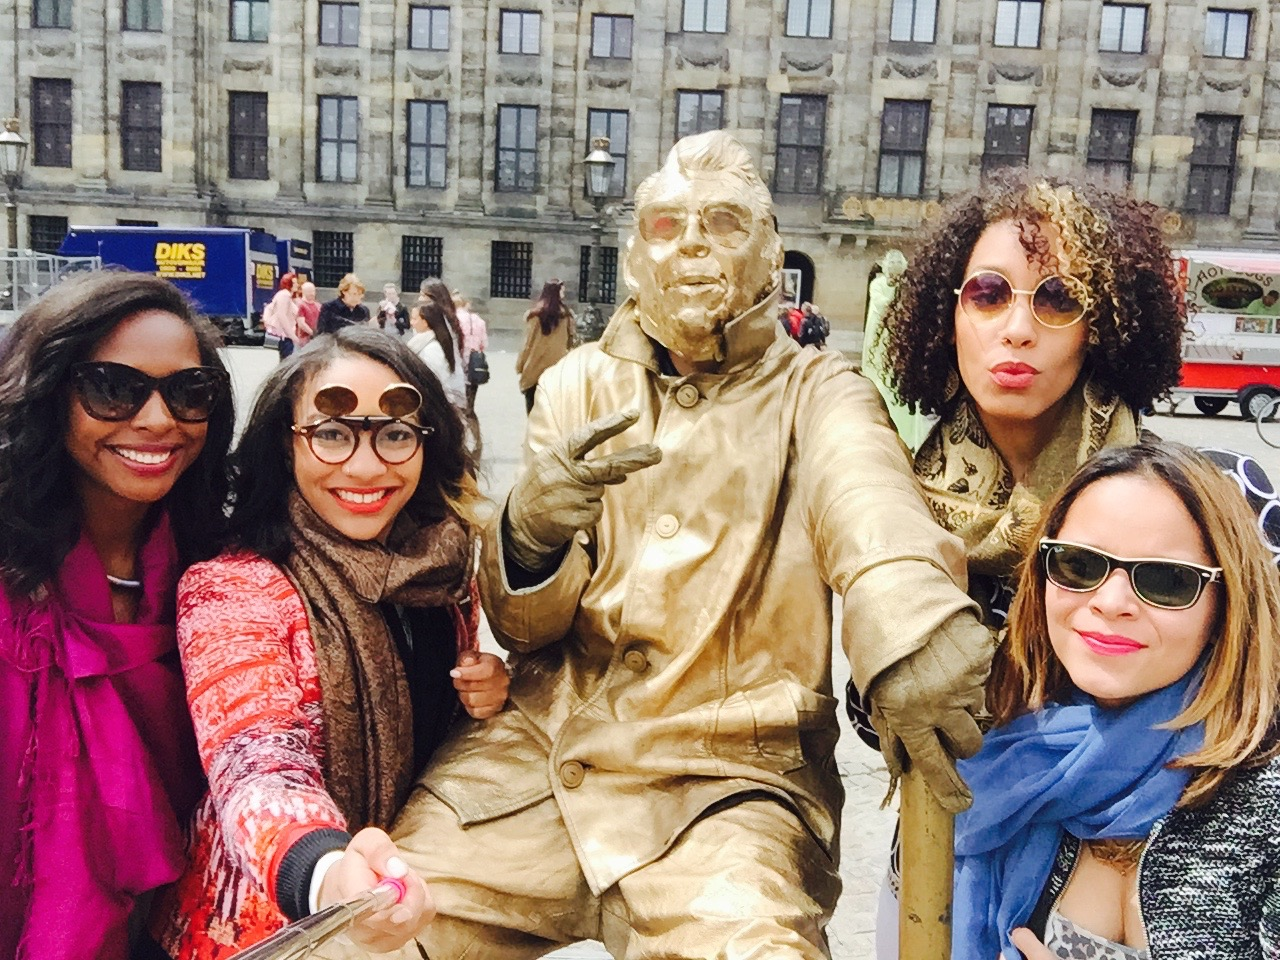 From left to right: Me, Maritza, Gold man, Carolina & Frances during our 2015 graduation and life celebration trip to Europe!